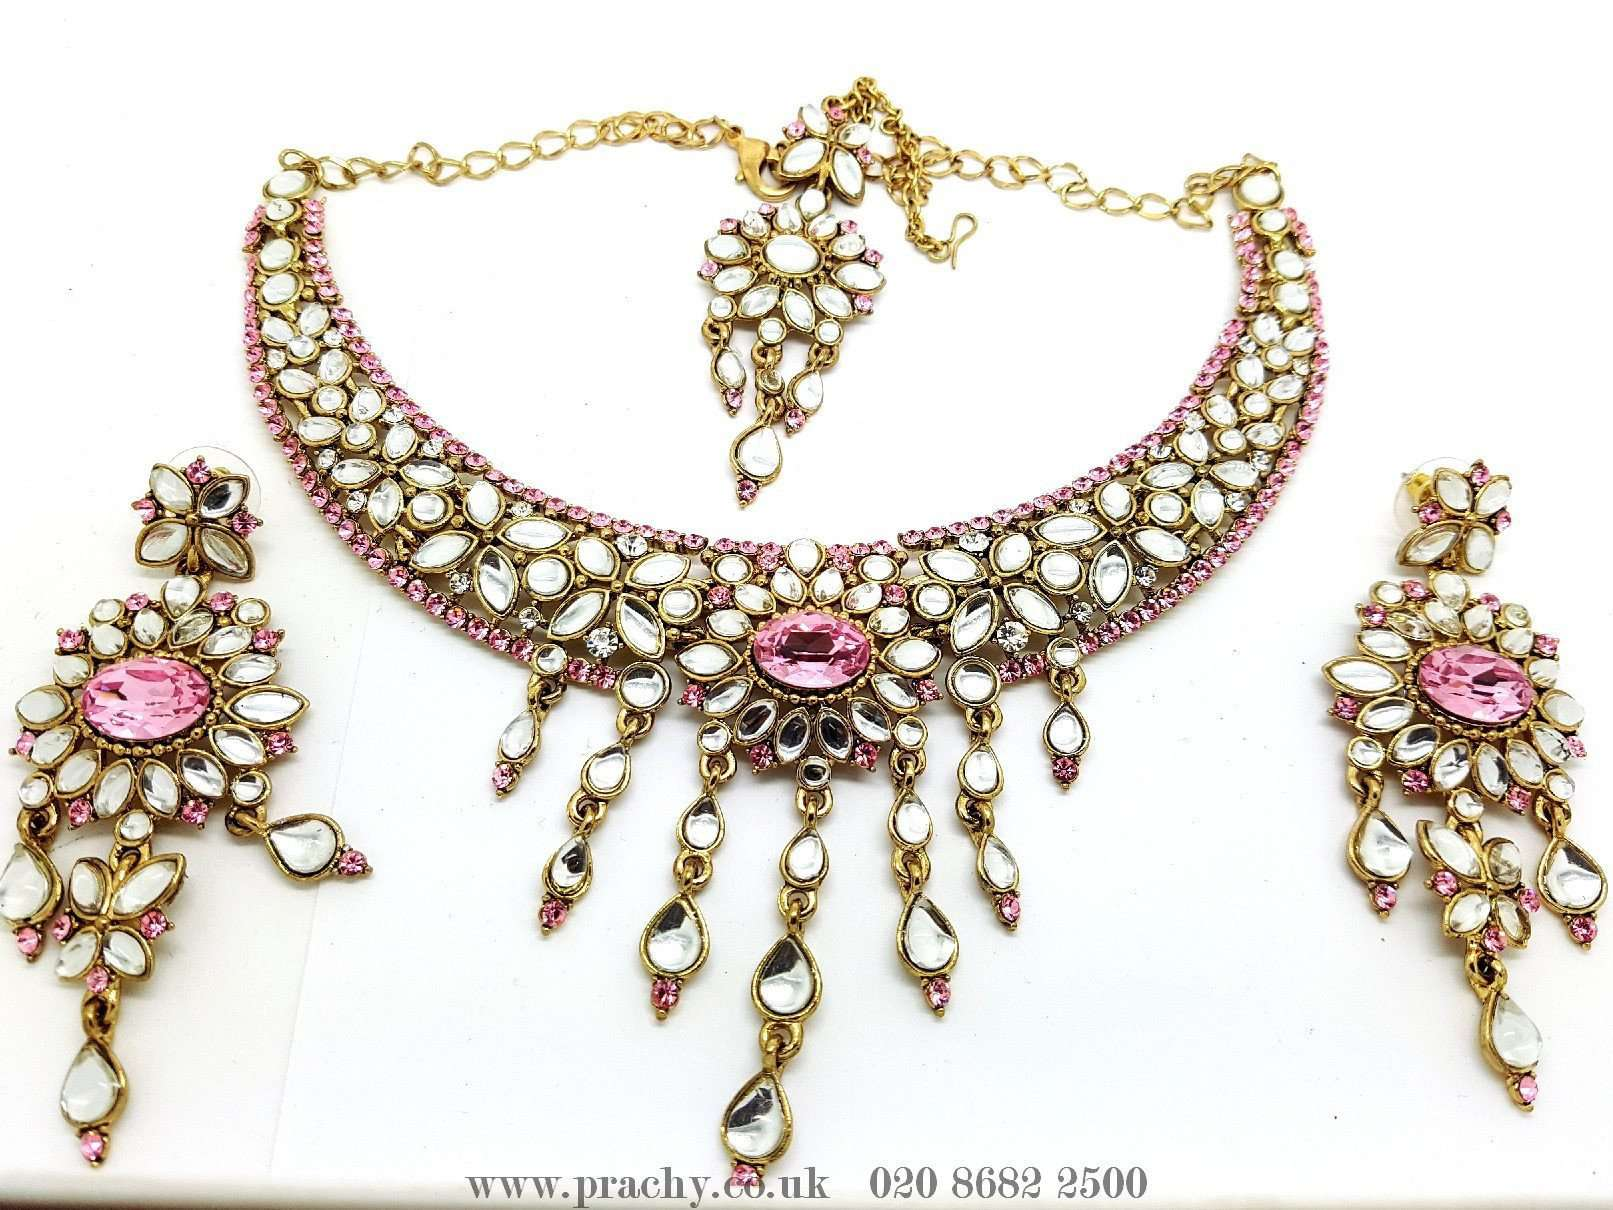 mj 8715 ka 0616 - Choker set - Prachy Creations